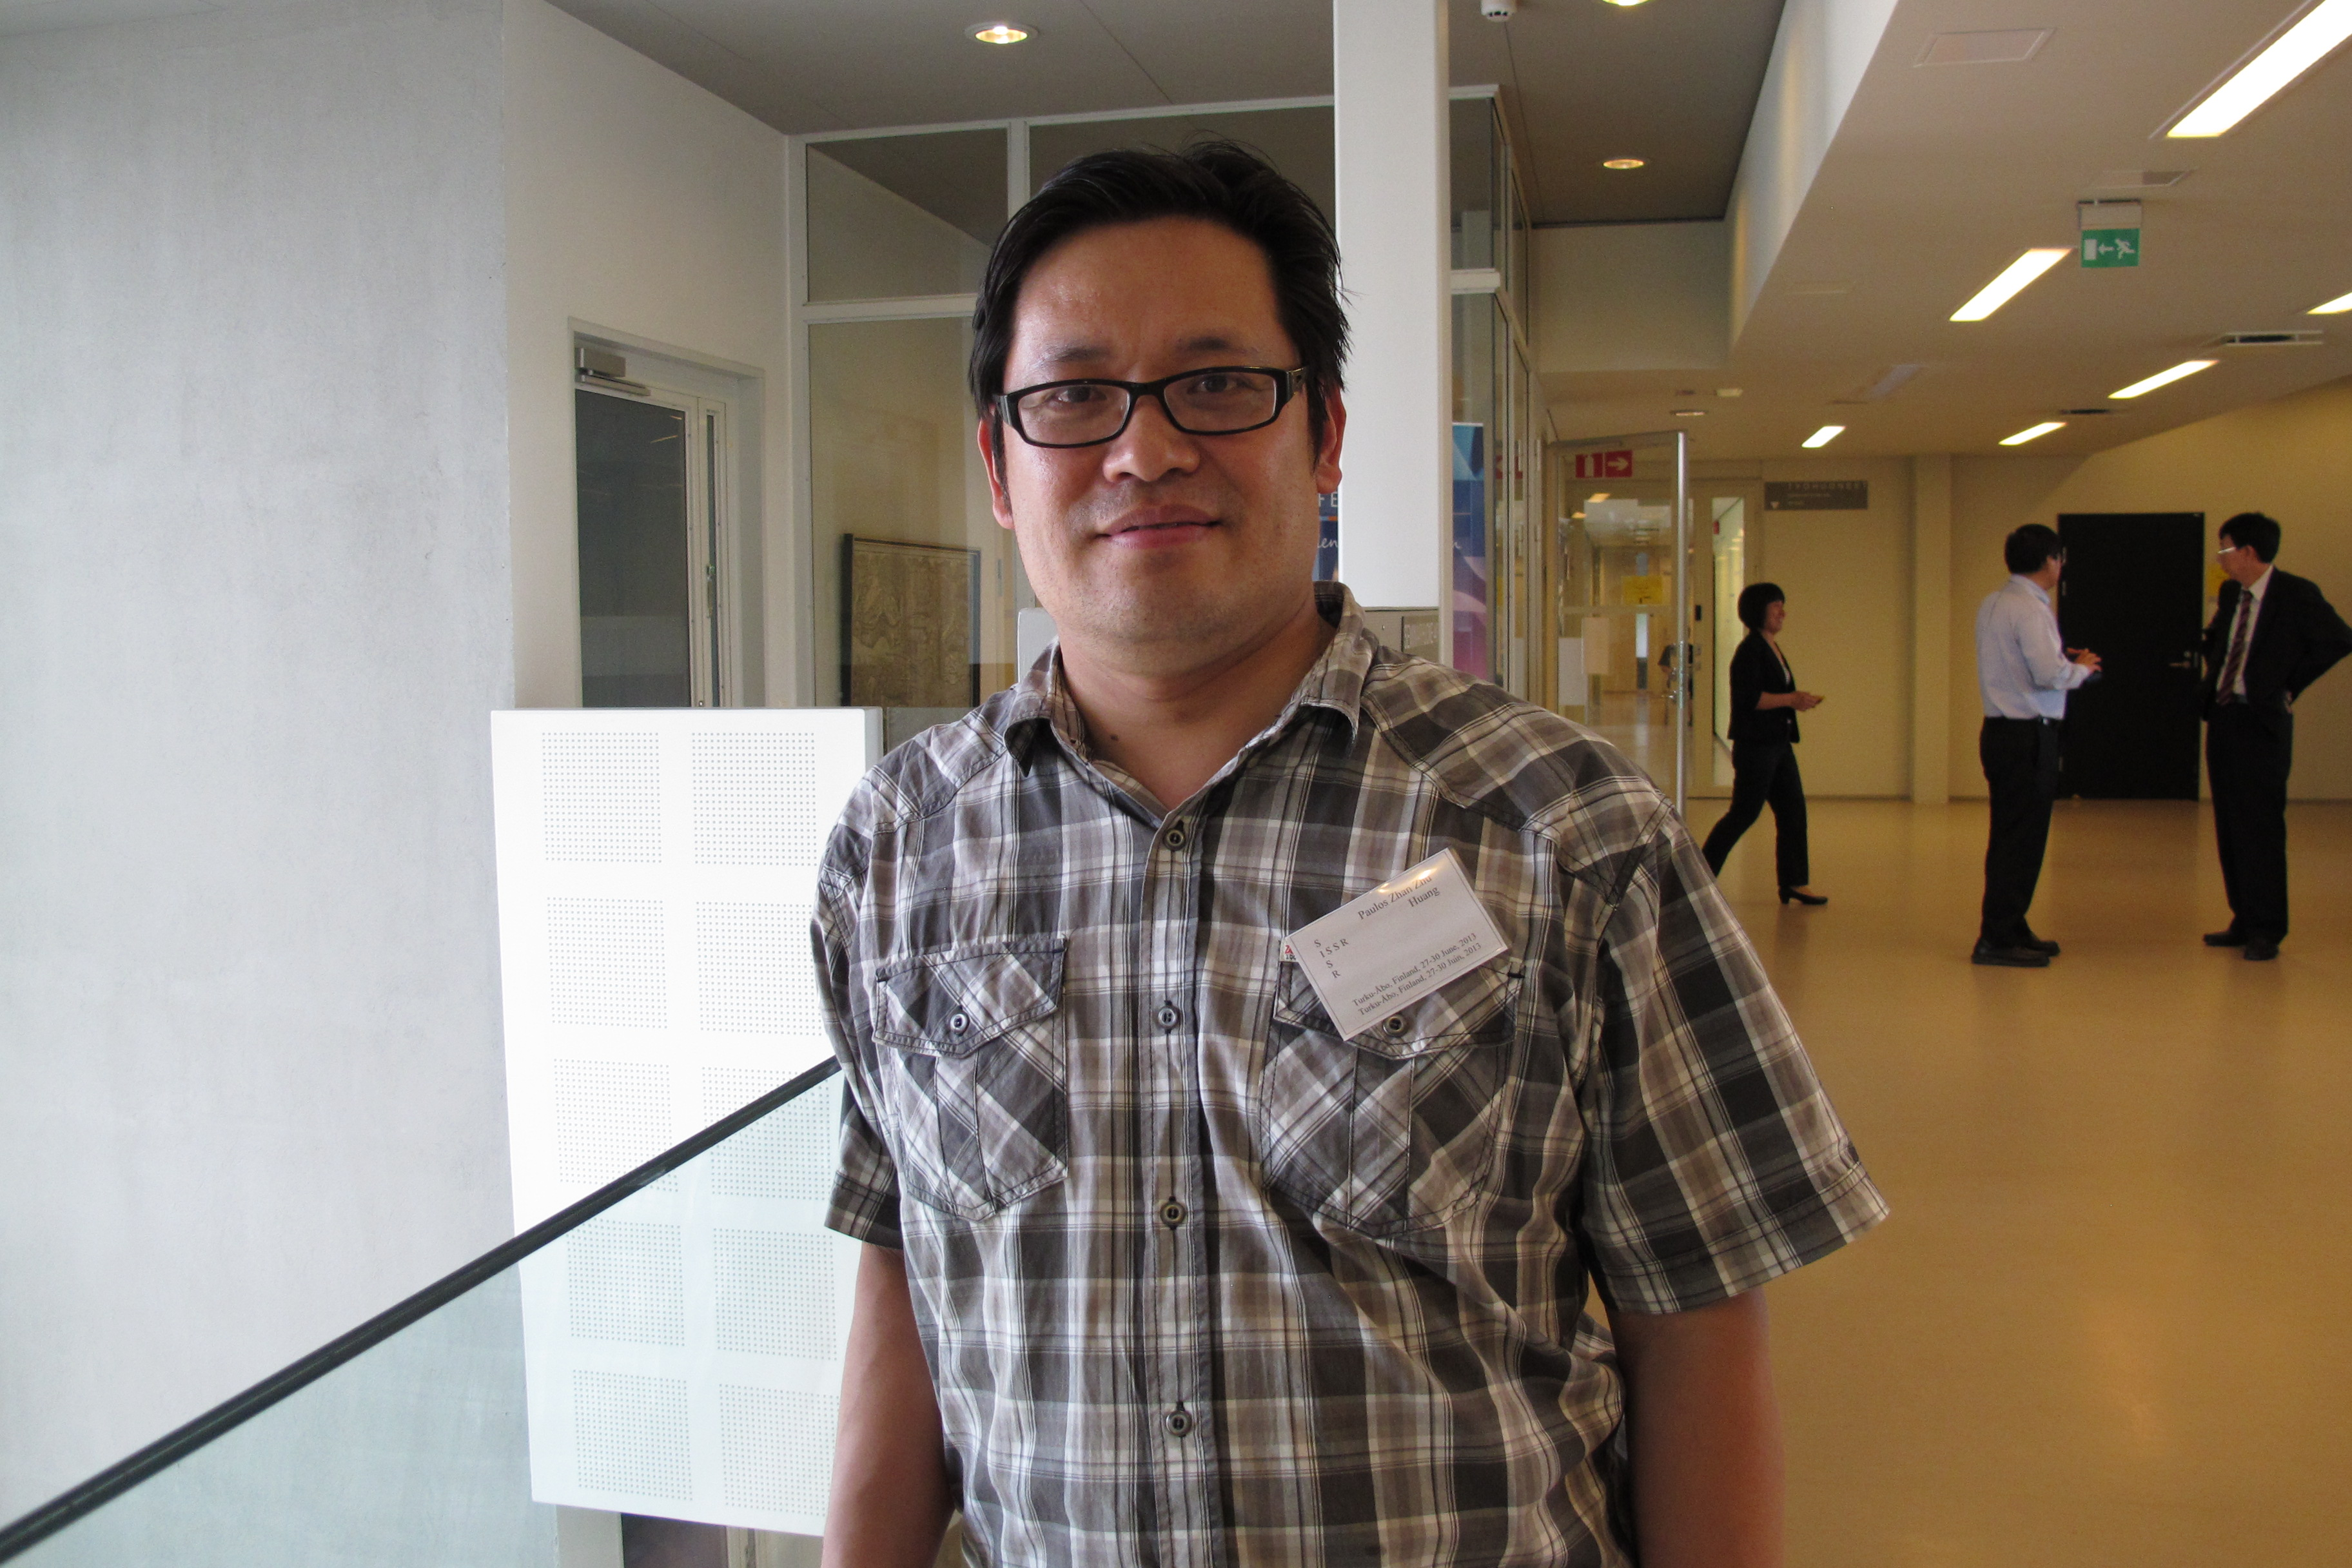 Huang Paulos is pastor of the Chinese-speaking International Evangelical Congregation in the Helsinki area and Adjunct-Professor/Docent of the University of Helsinki.